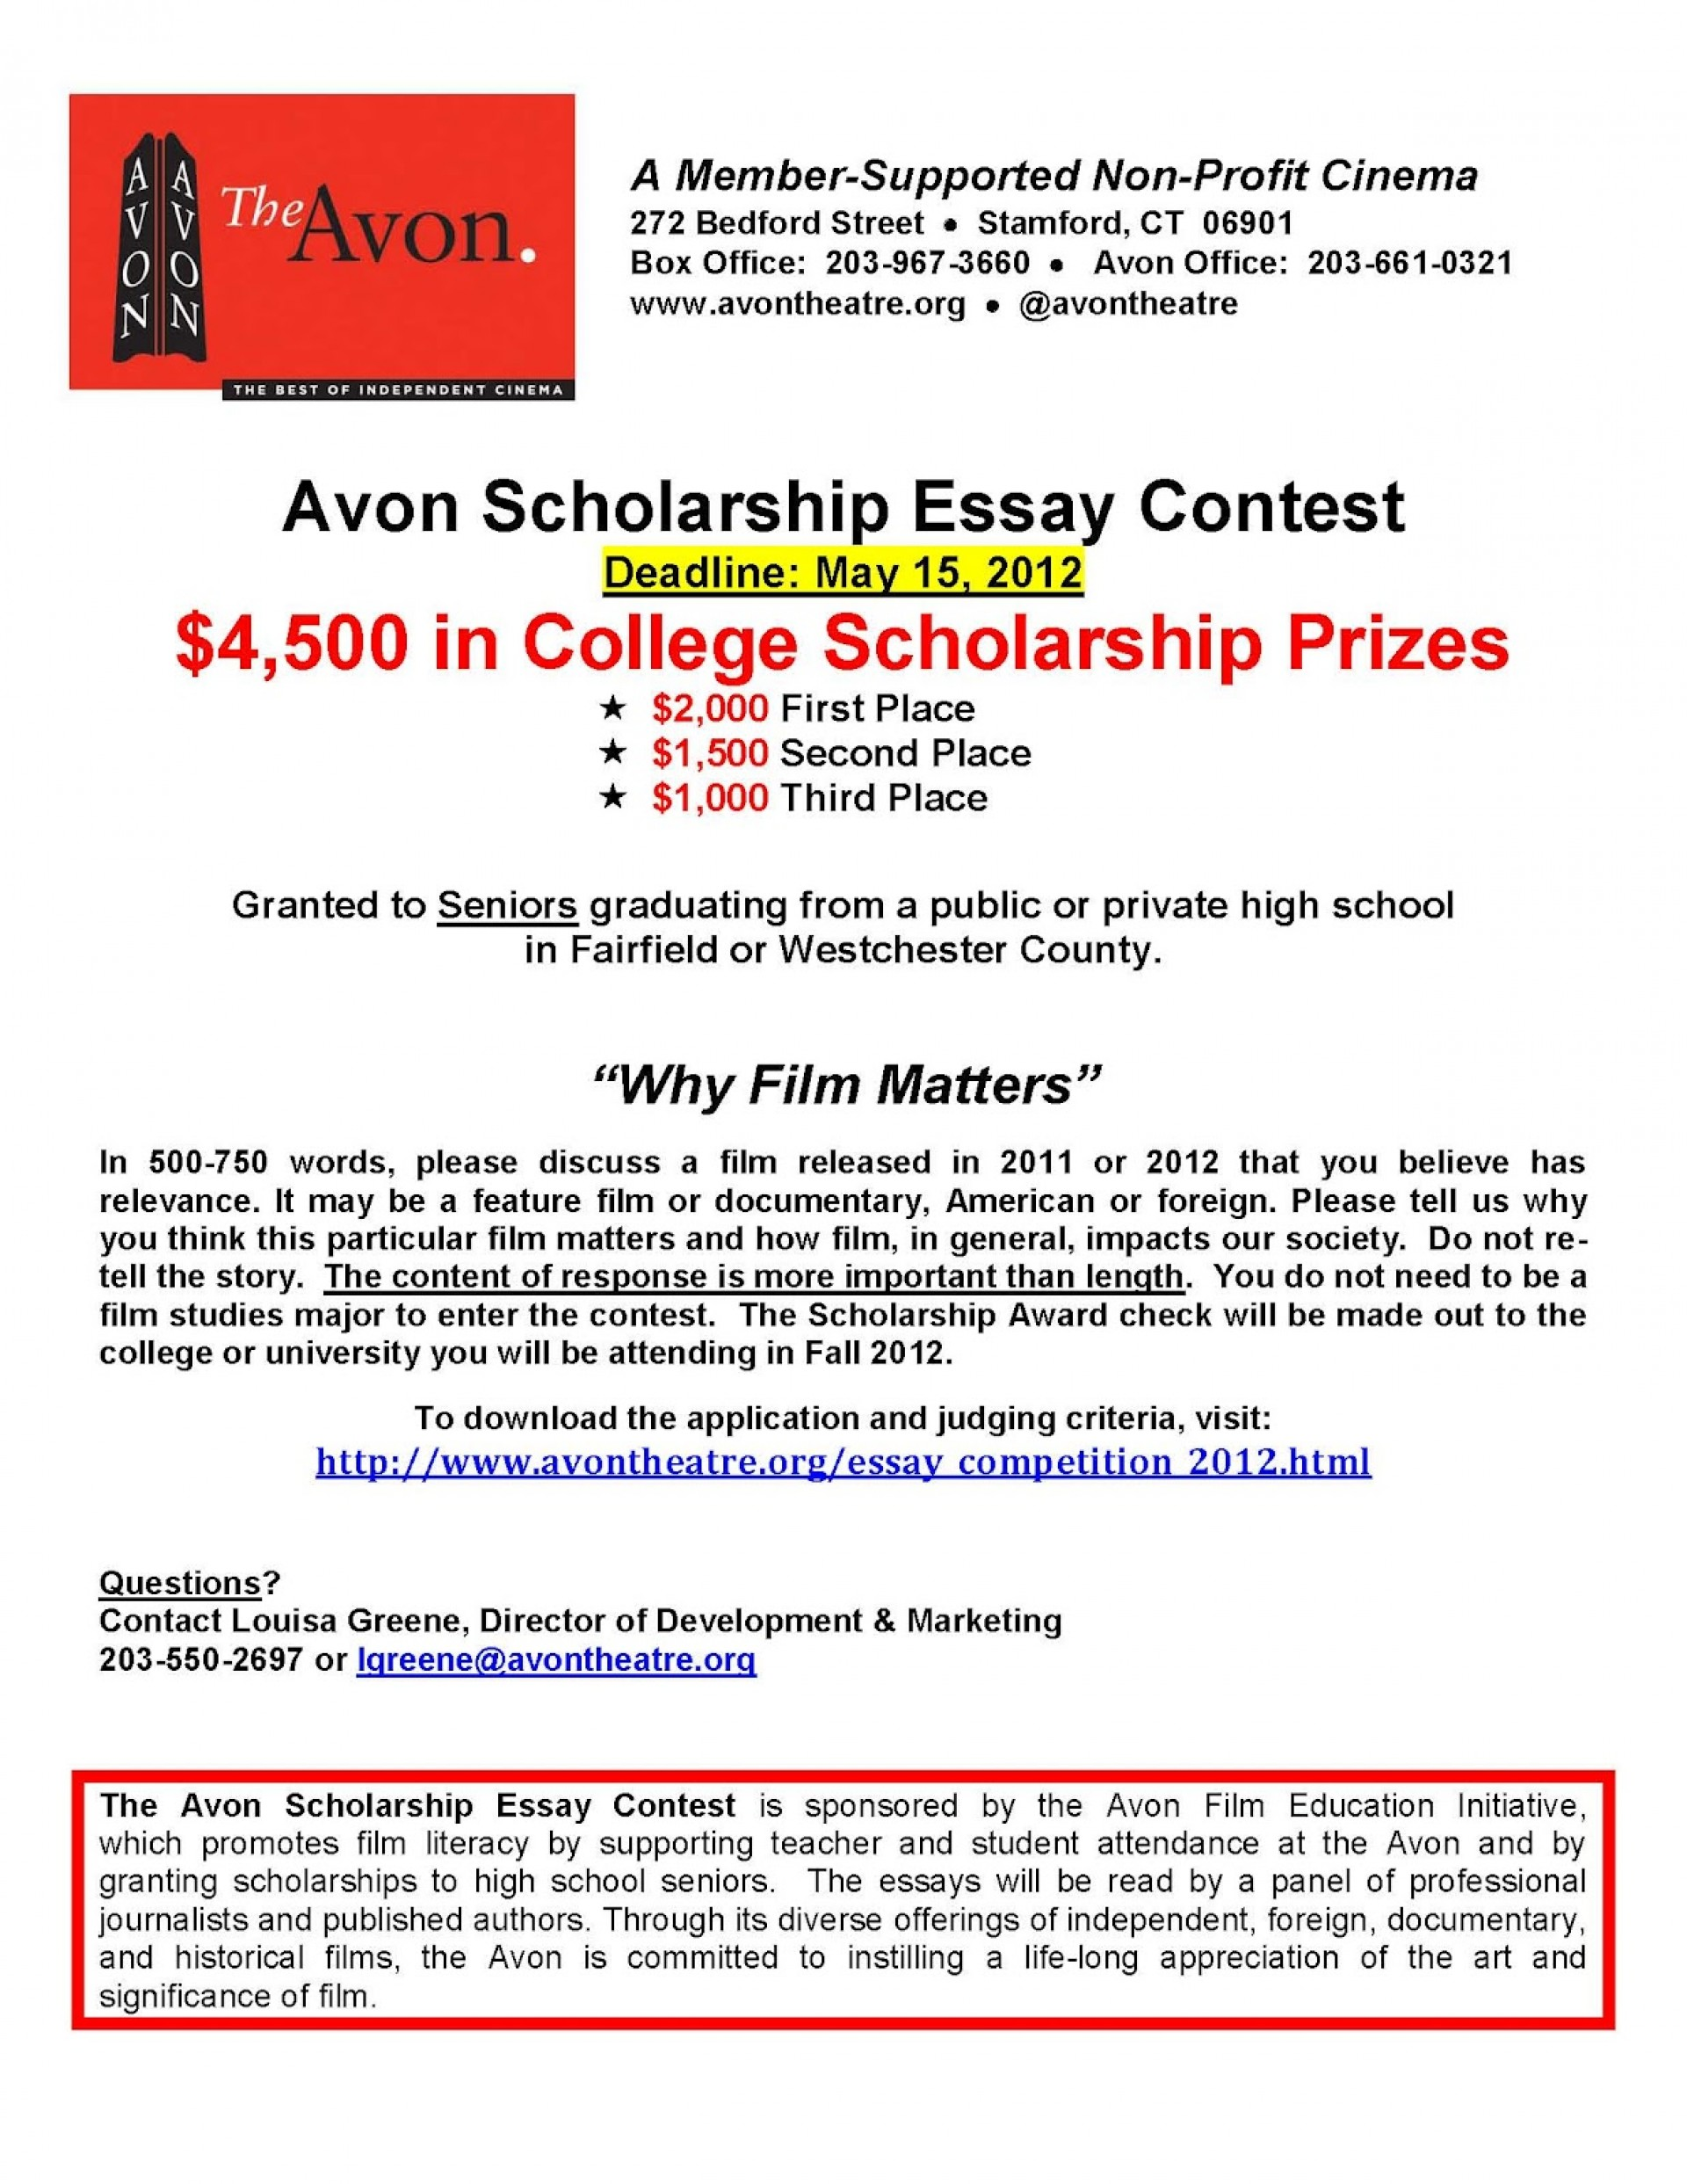 014 Essay Example High School Contests Fascinating Contest Winners 2019 For Scholarships 1920